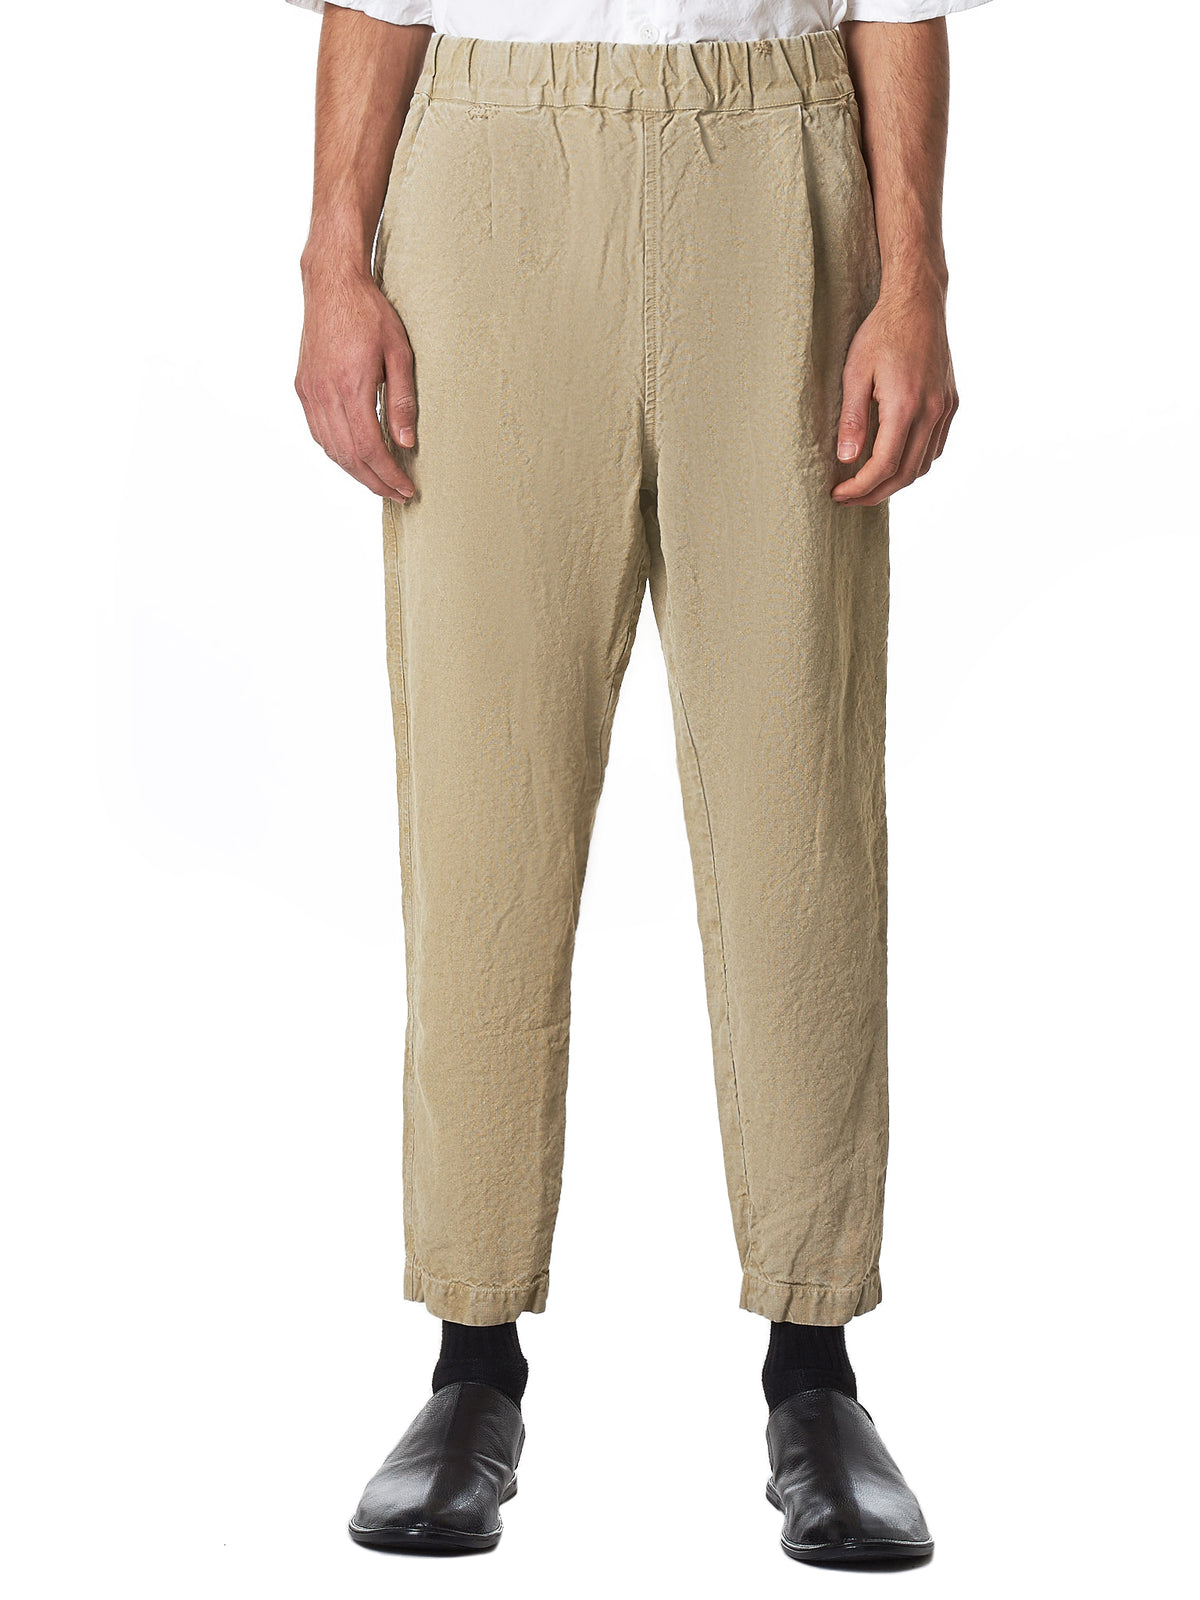 Casey Casey Brown Pants - Hlorenzo Front